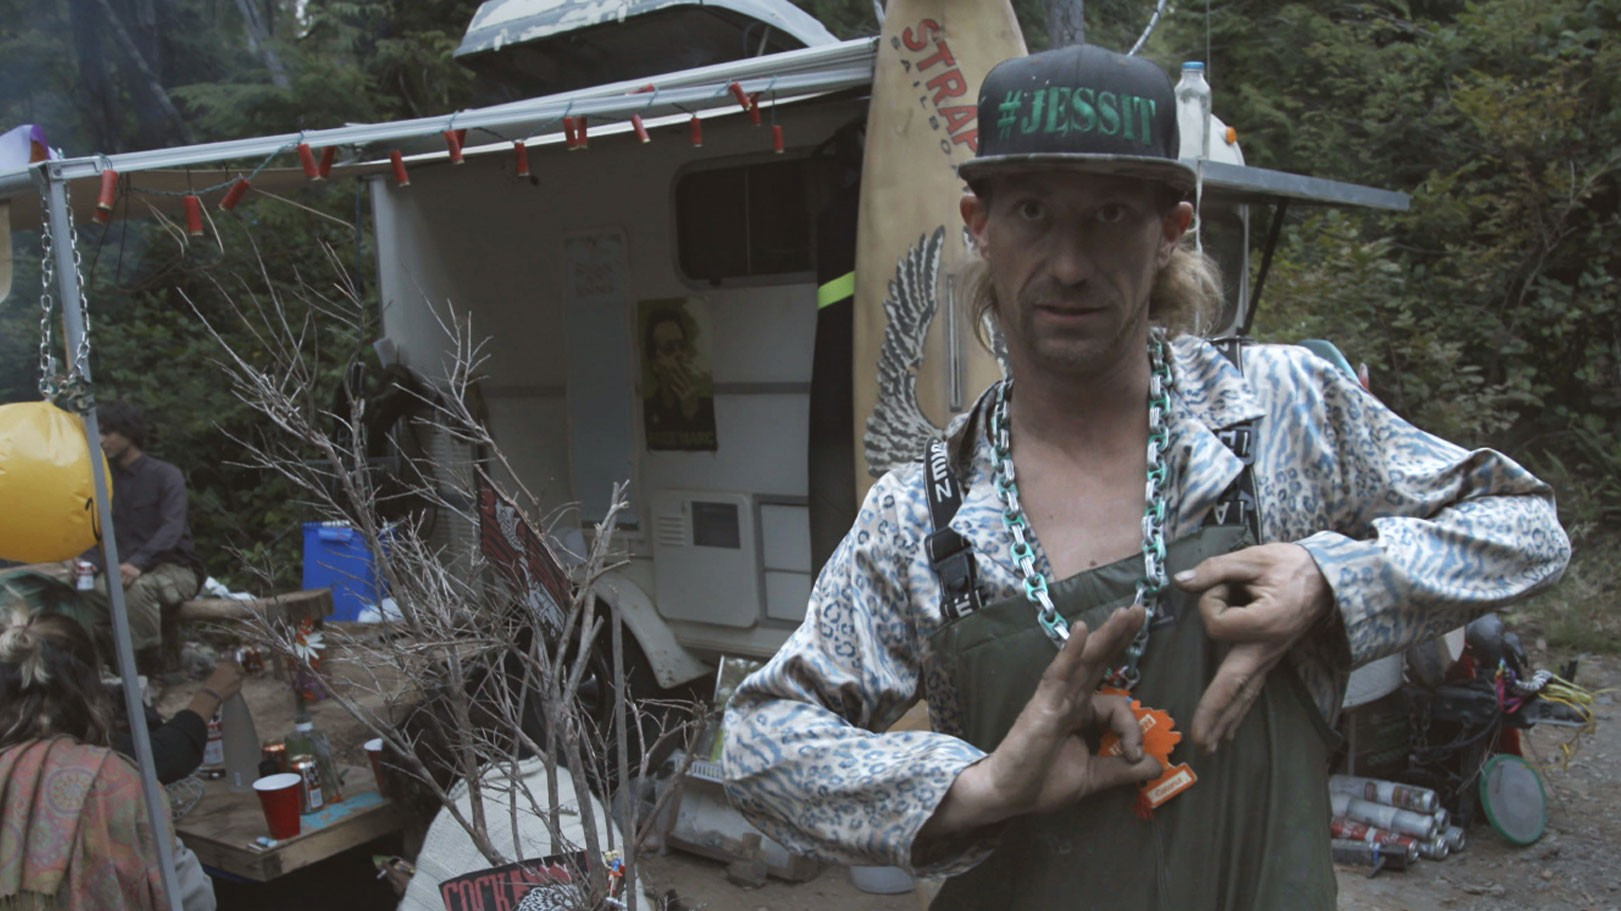 Welcome to Poole's Land, an Anarchist Commune in the Canadian Rainforest